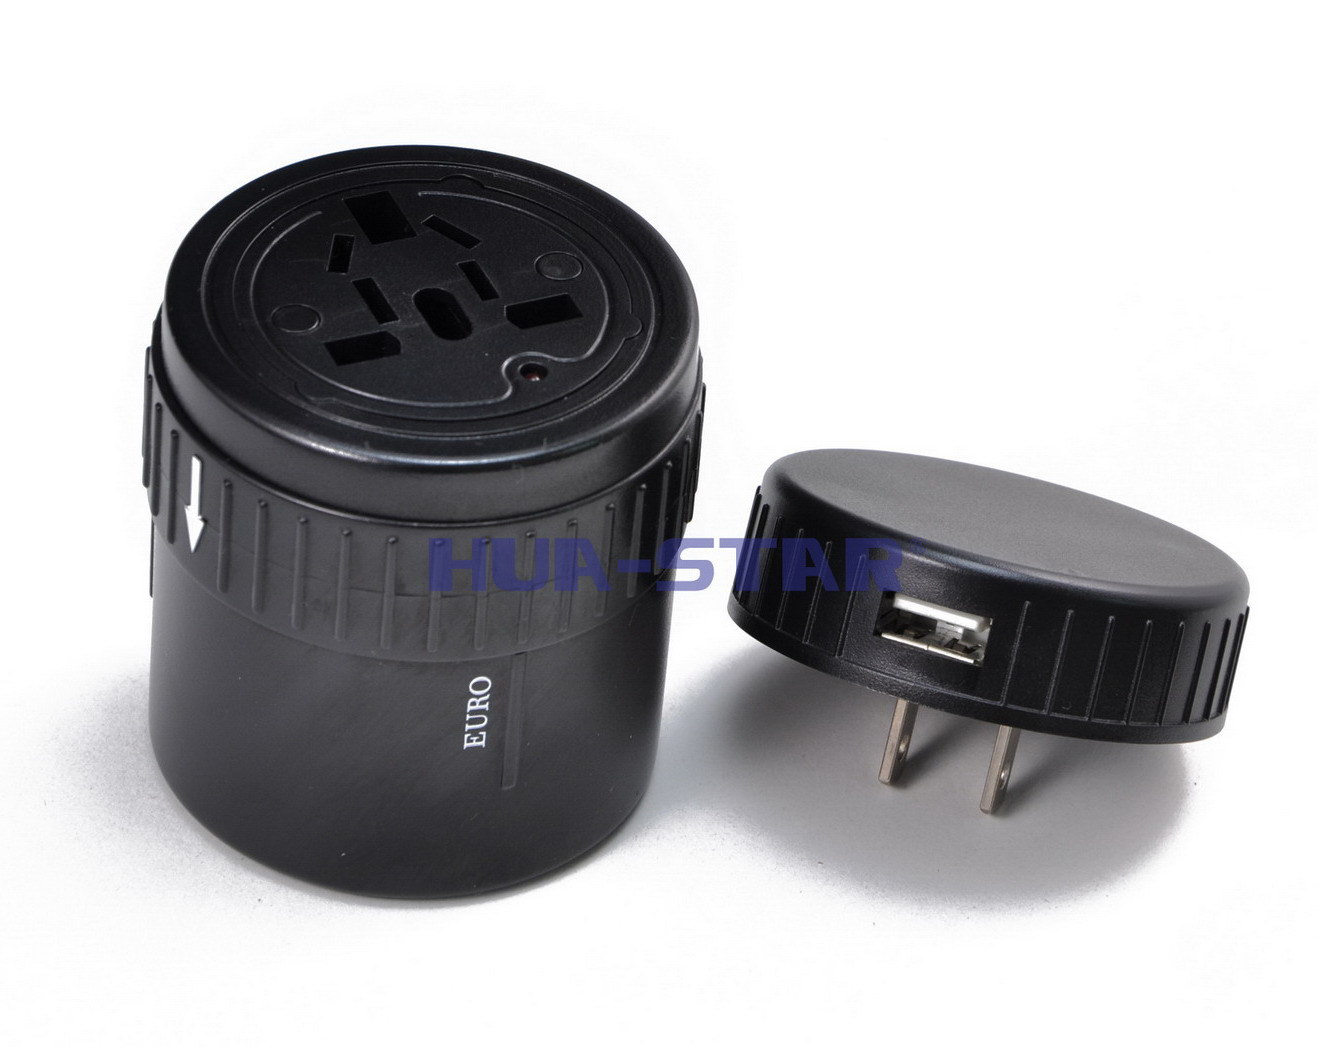 International Travel Adapter with USB Charger for Promotional Gifts